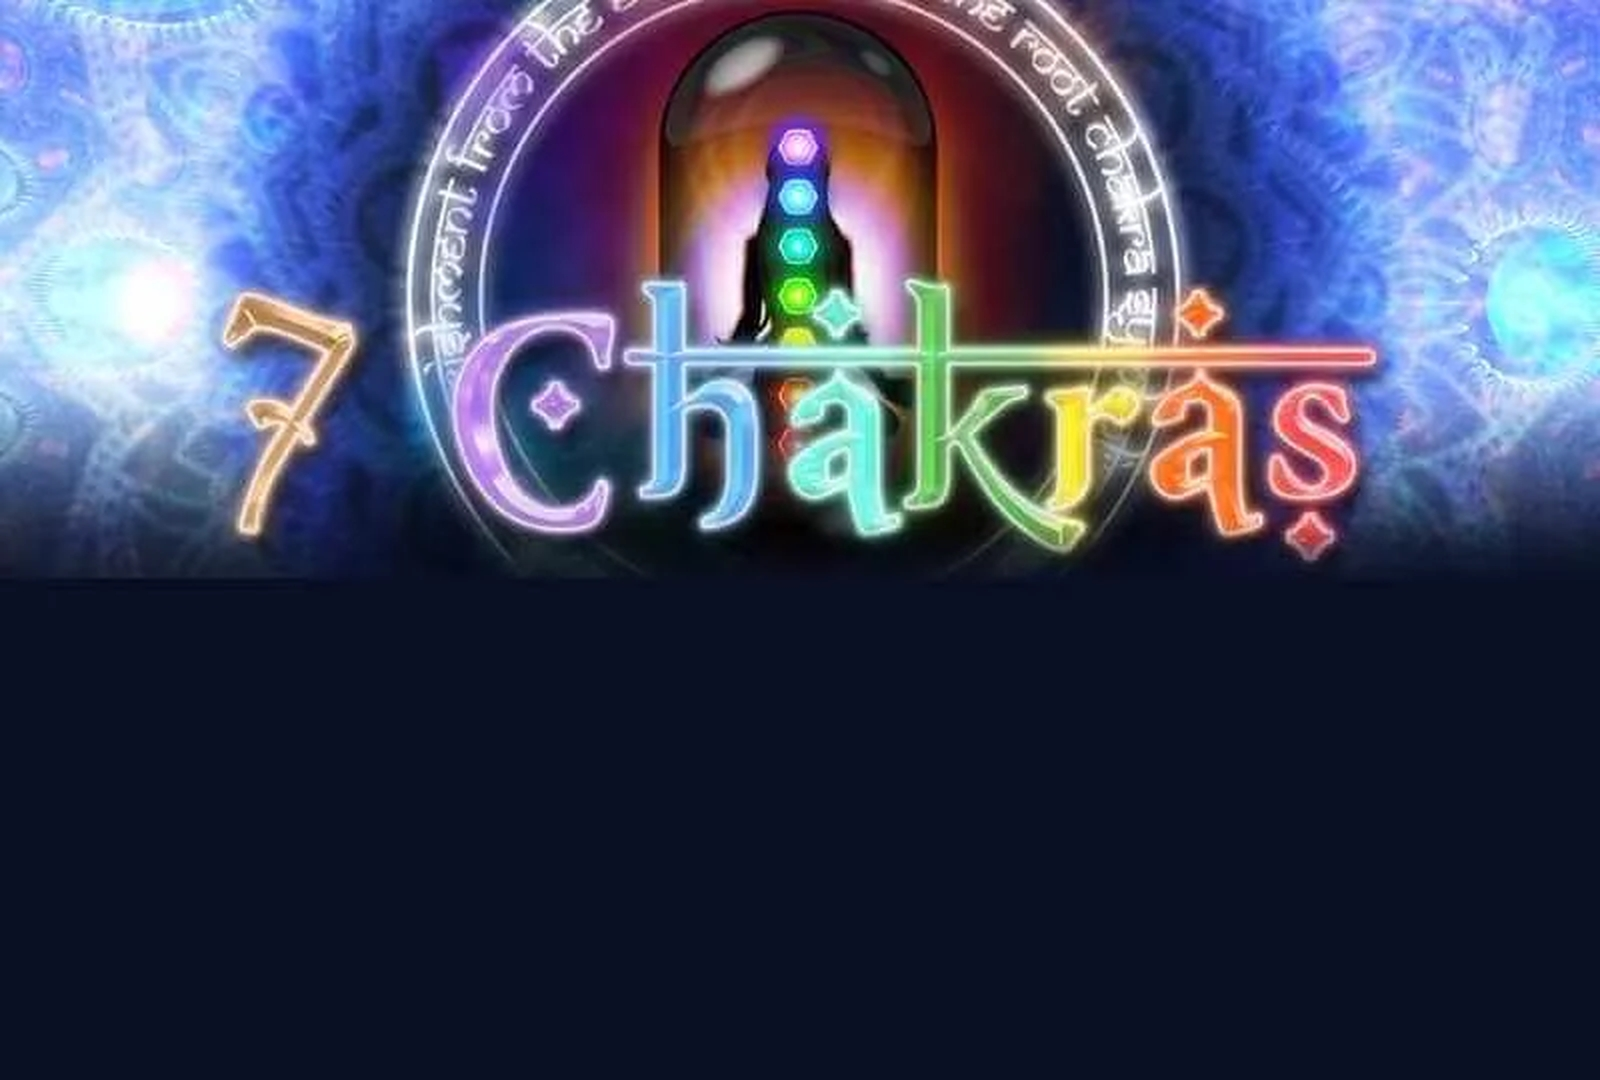 The 7 Chakras Online Slot Demo Game by Genii